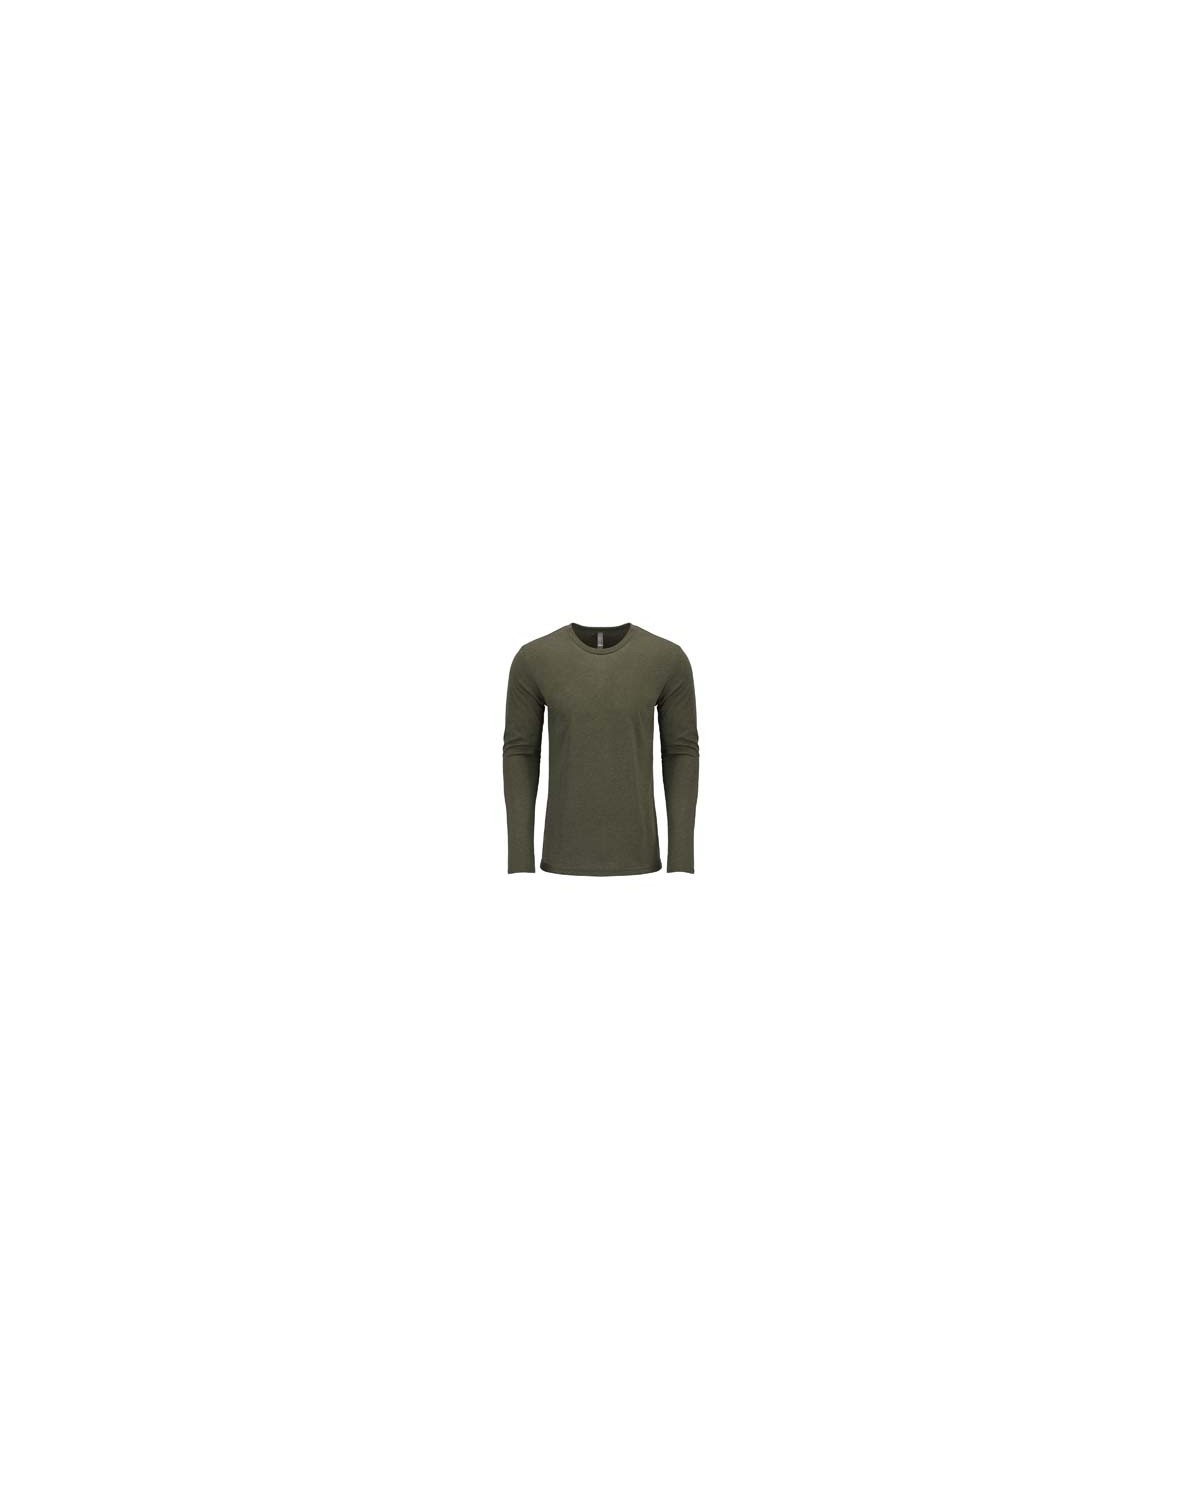 6071 Next Level MILITARY GREEN